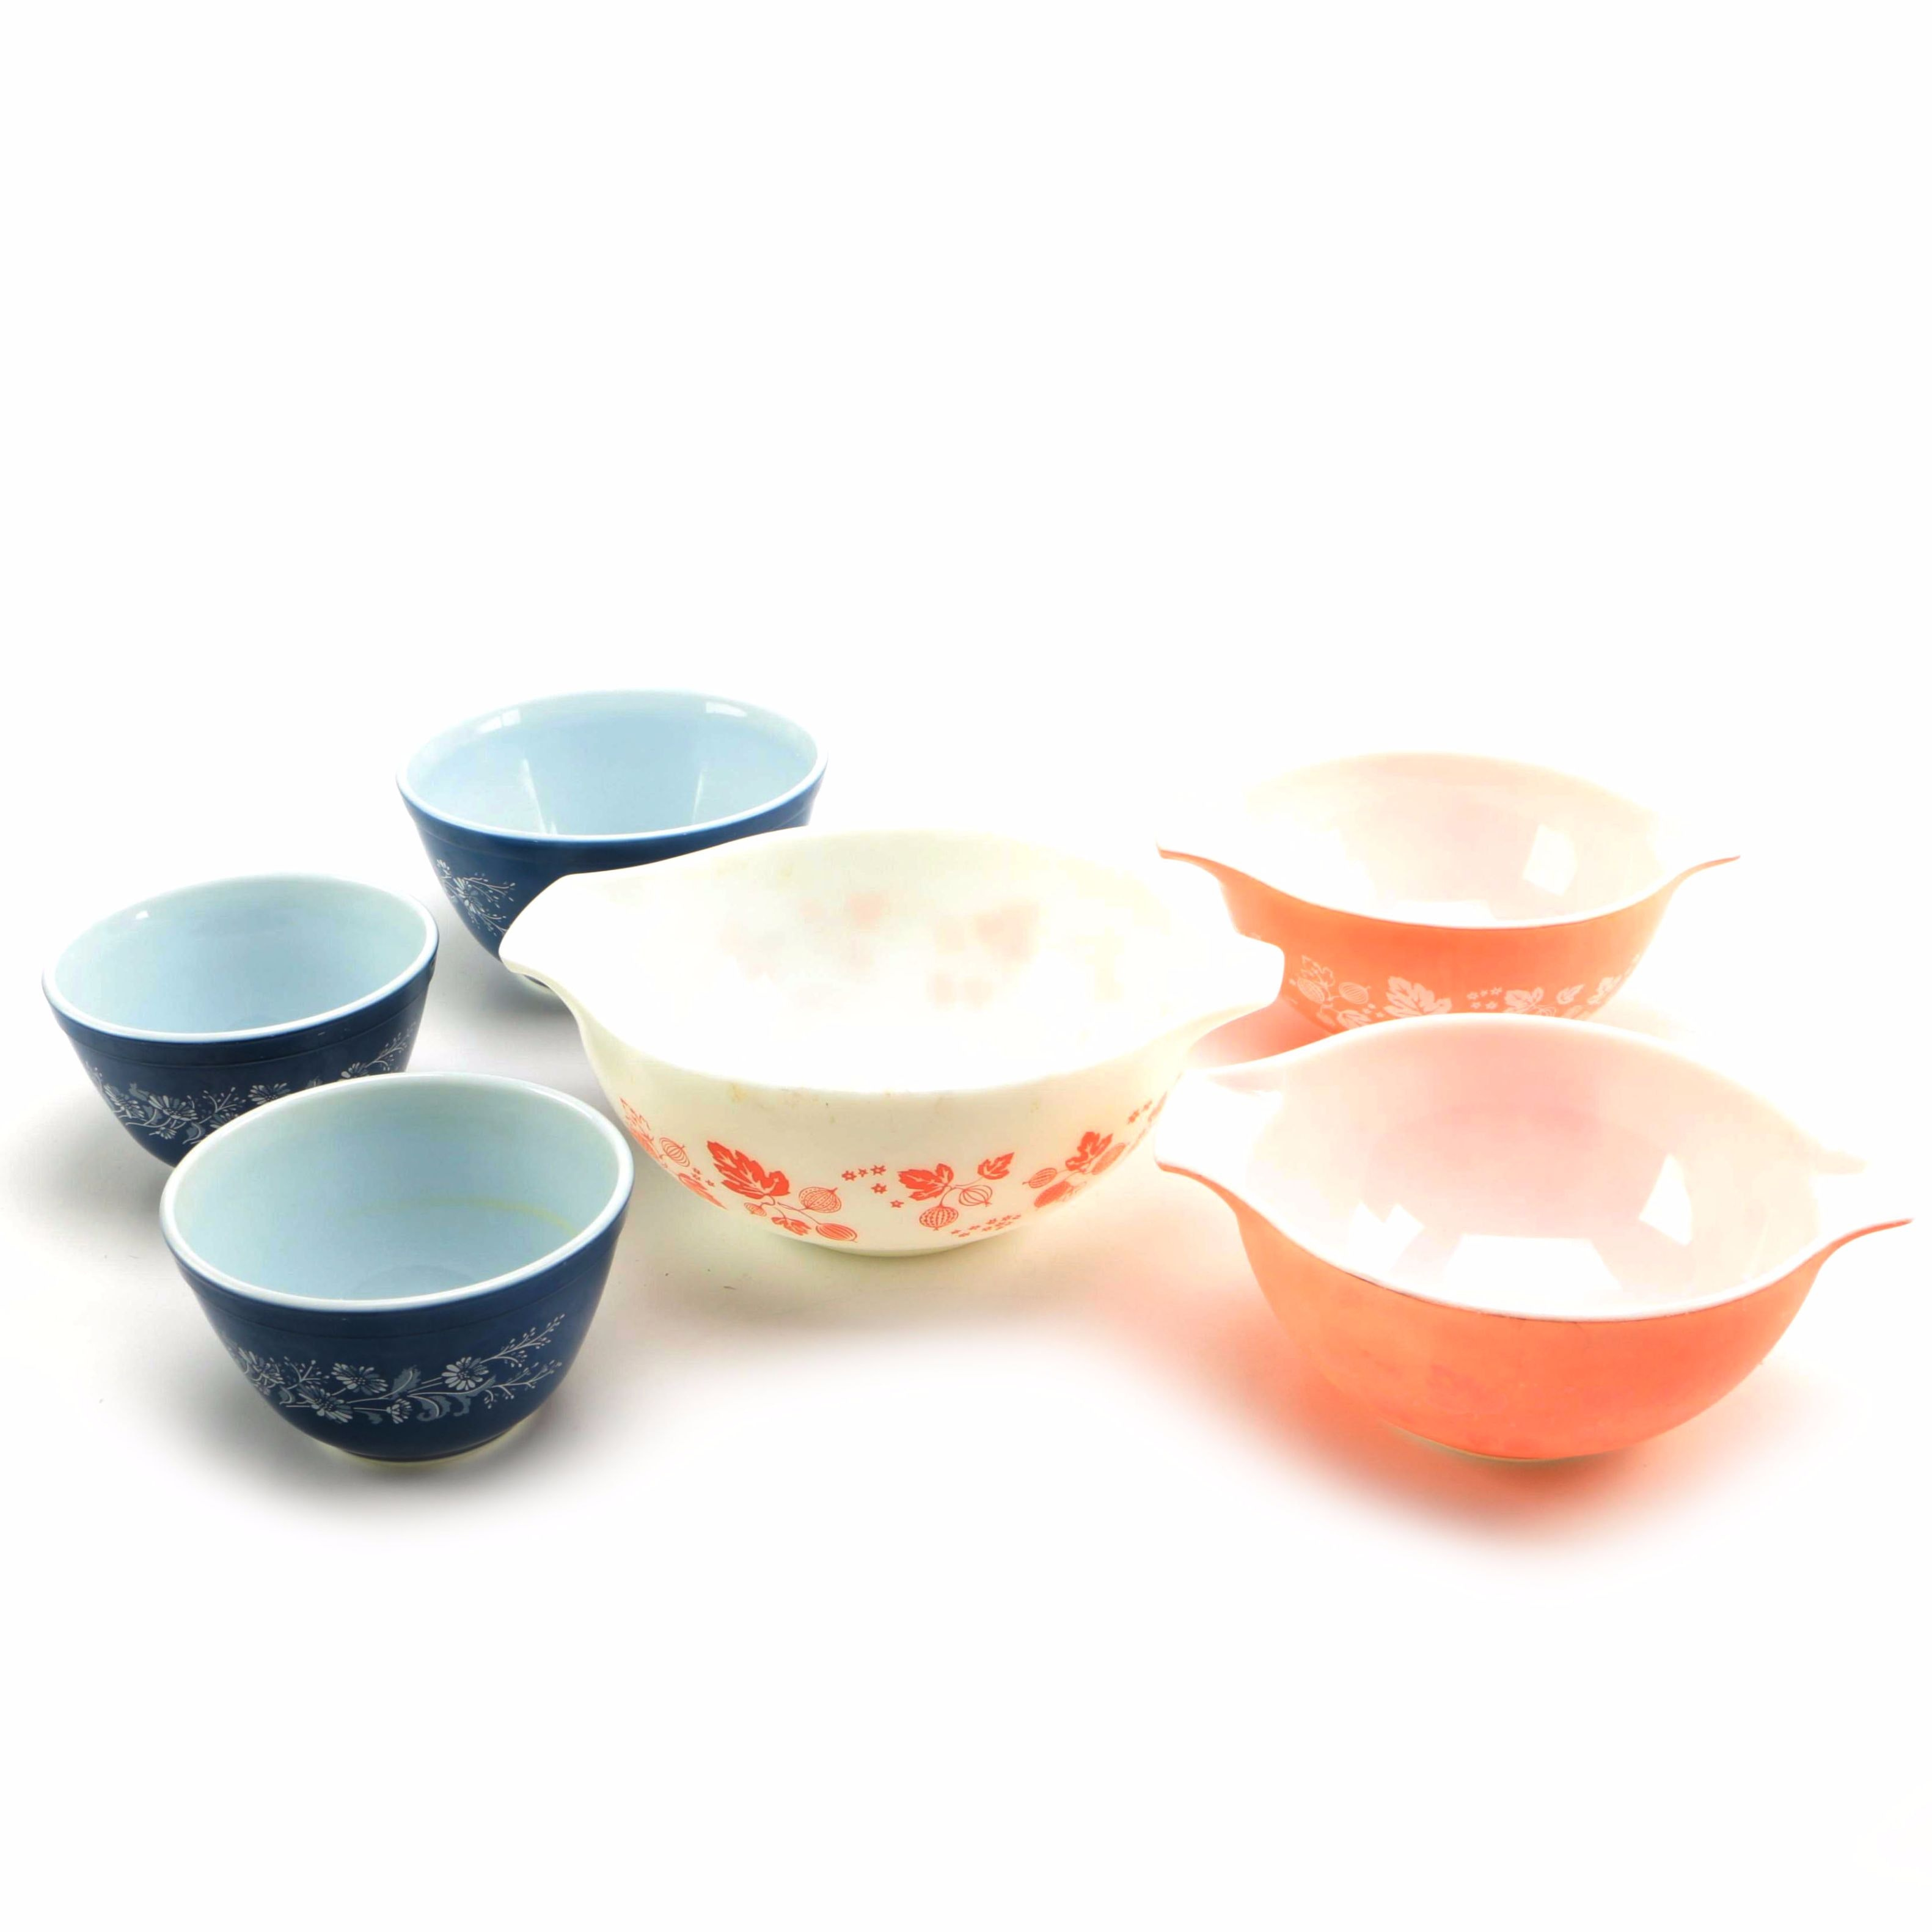 Collection of Vintage Pyrex Bowls